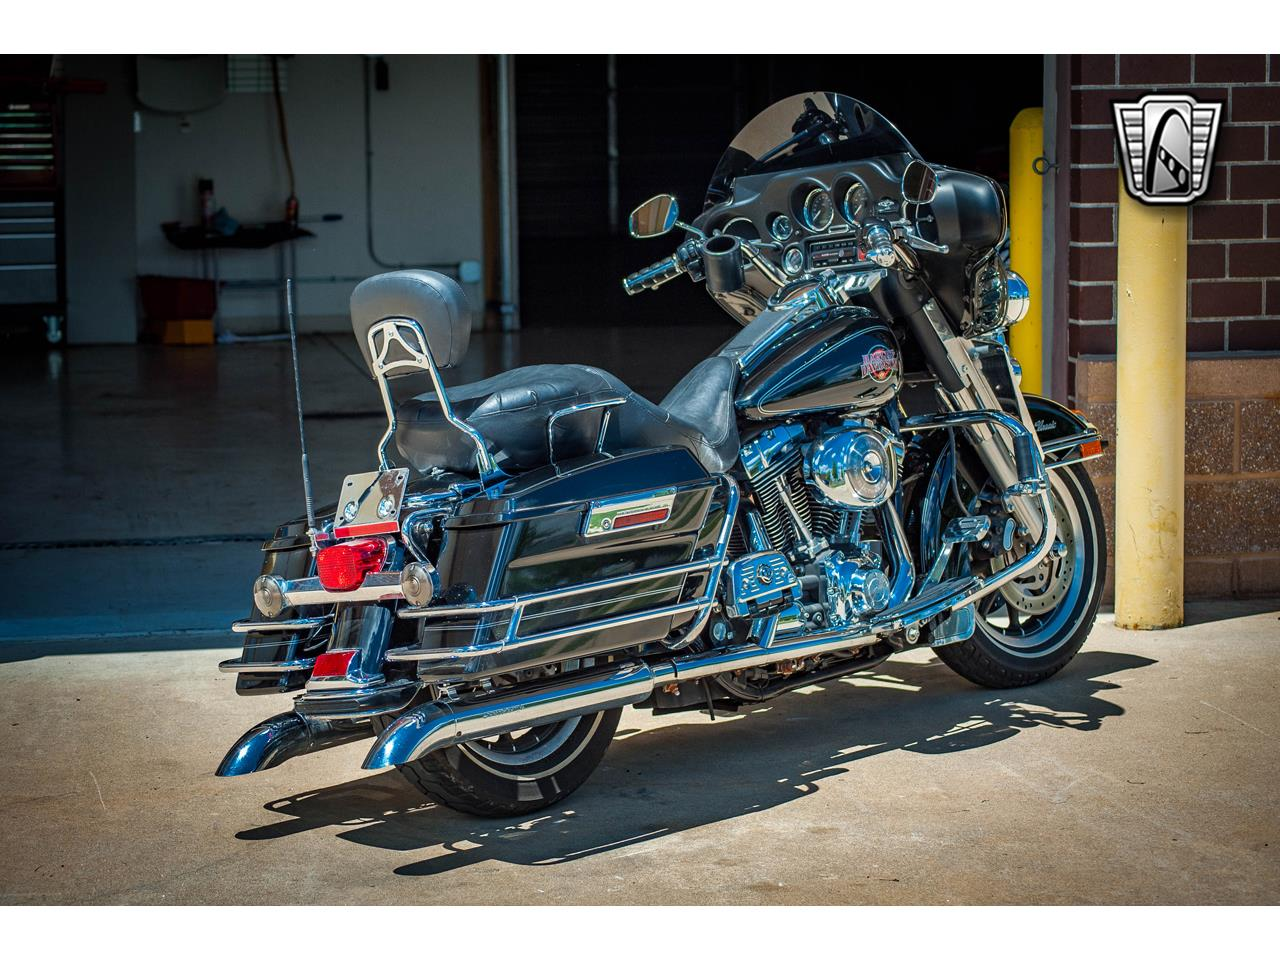 Large Picture of 2004 Motorcycle located in O'Fallon Illinois - $12,000.00 - QD6F